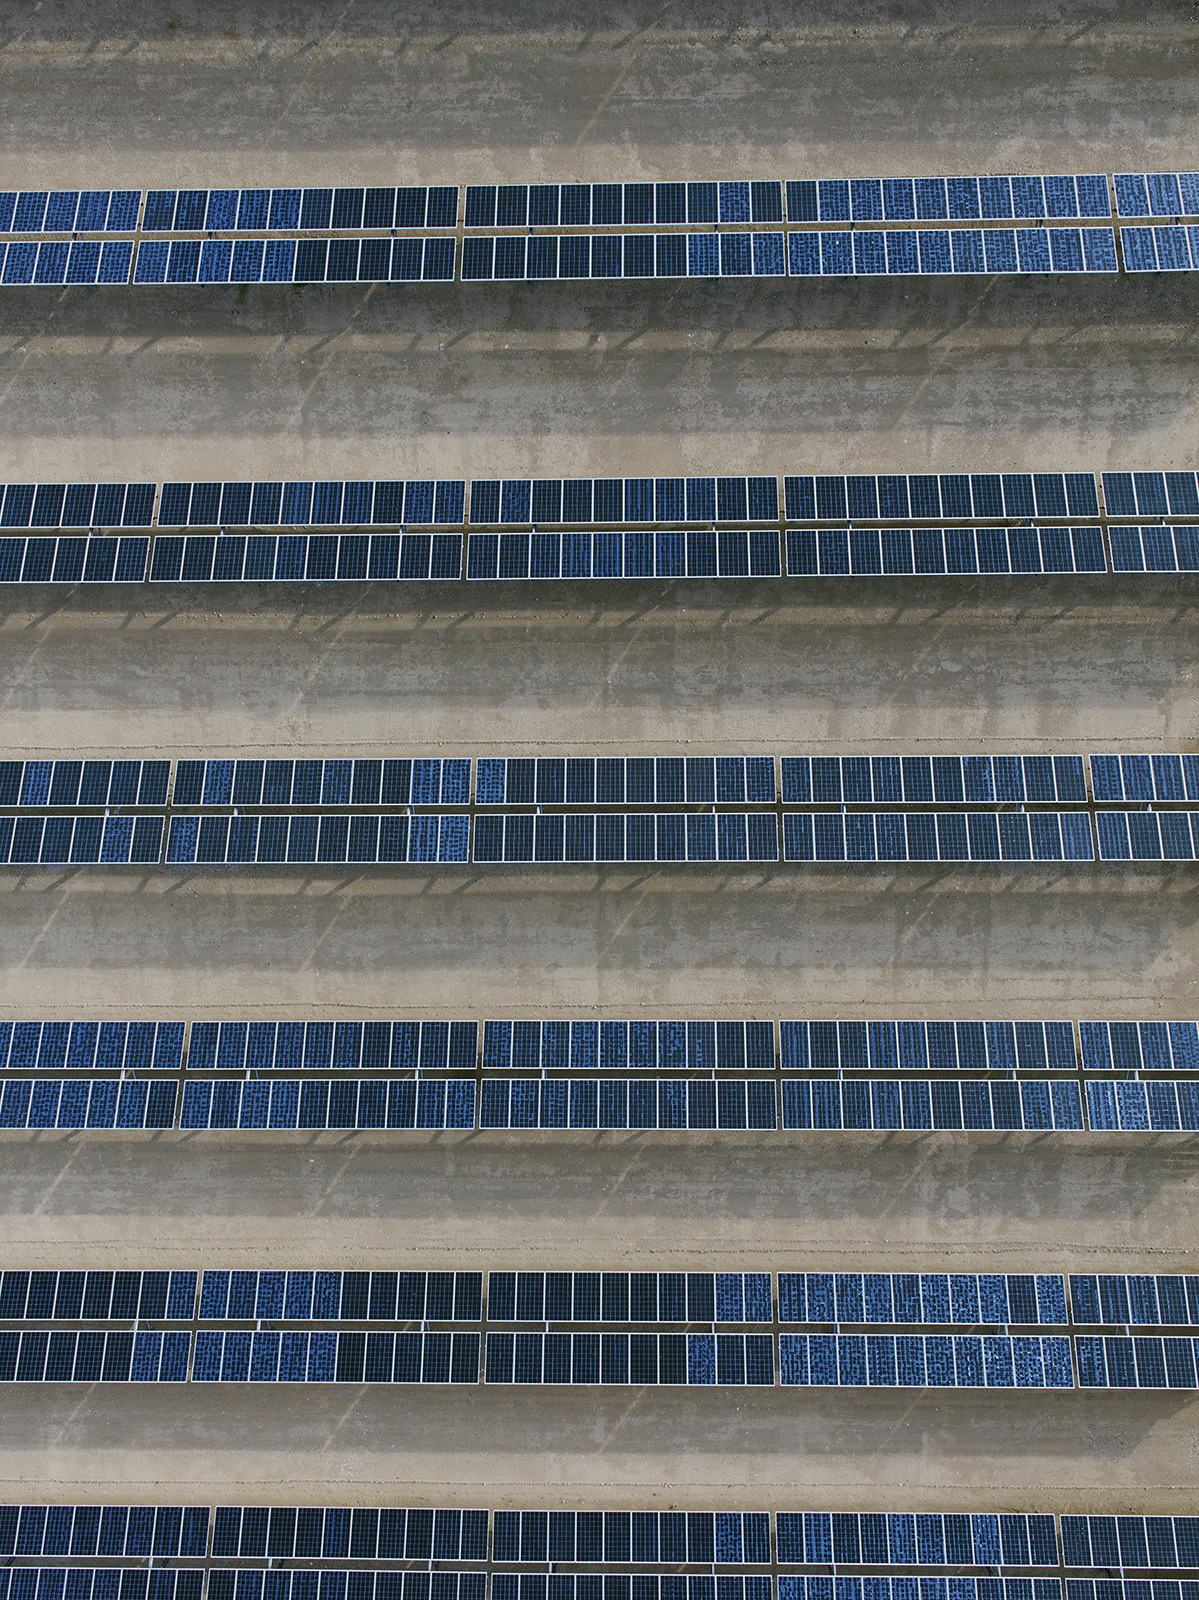 The installation is expected to come online in December 2019, and is expected to be comprised of more than 350,000 PV panels over an area of 271 hectares. Image: E.ON